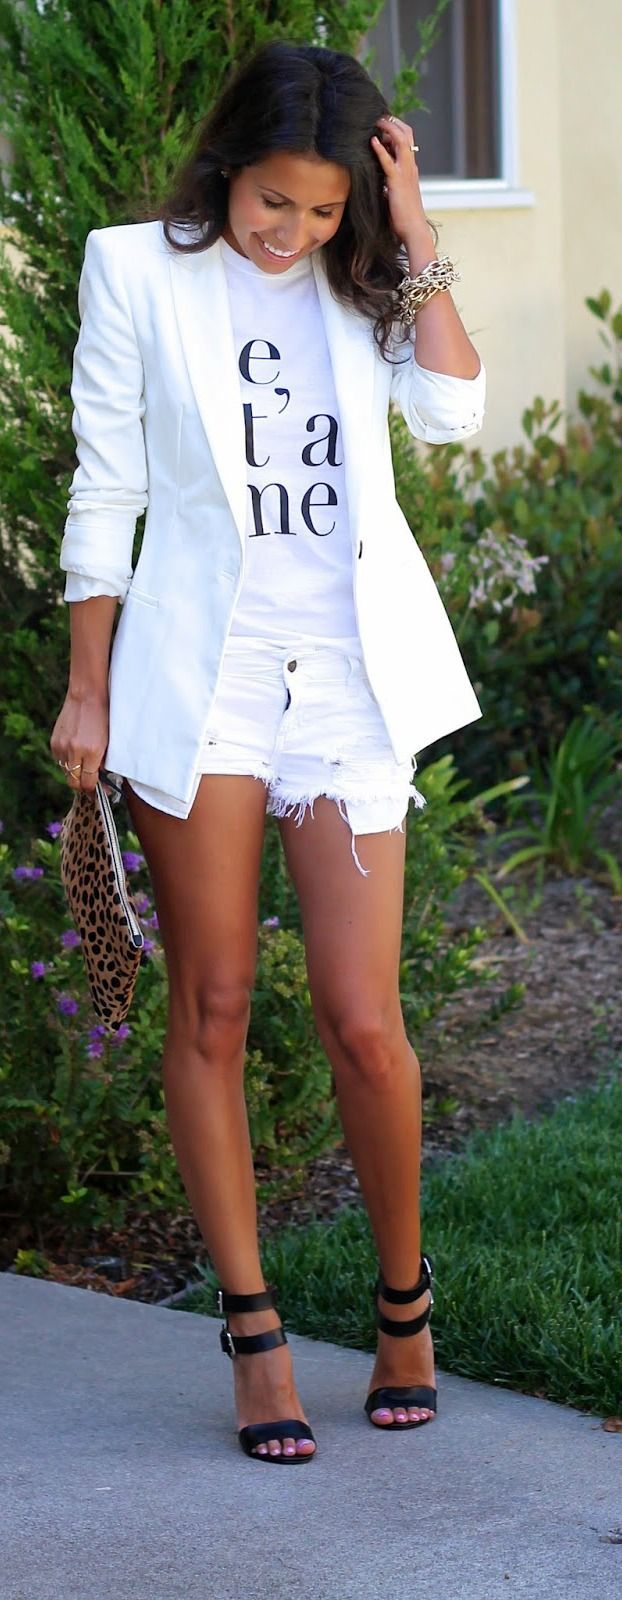 whte blazer and shorts. Yes! White on white is on trend. Yay